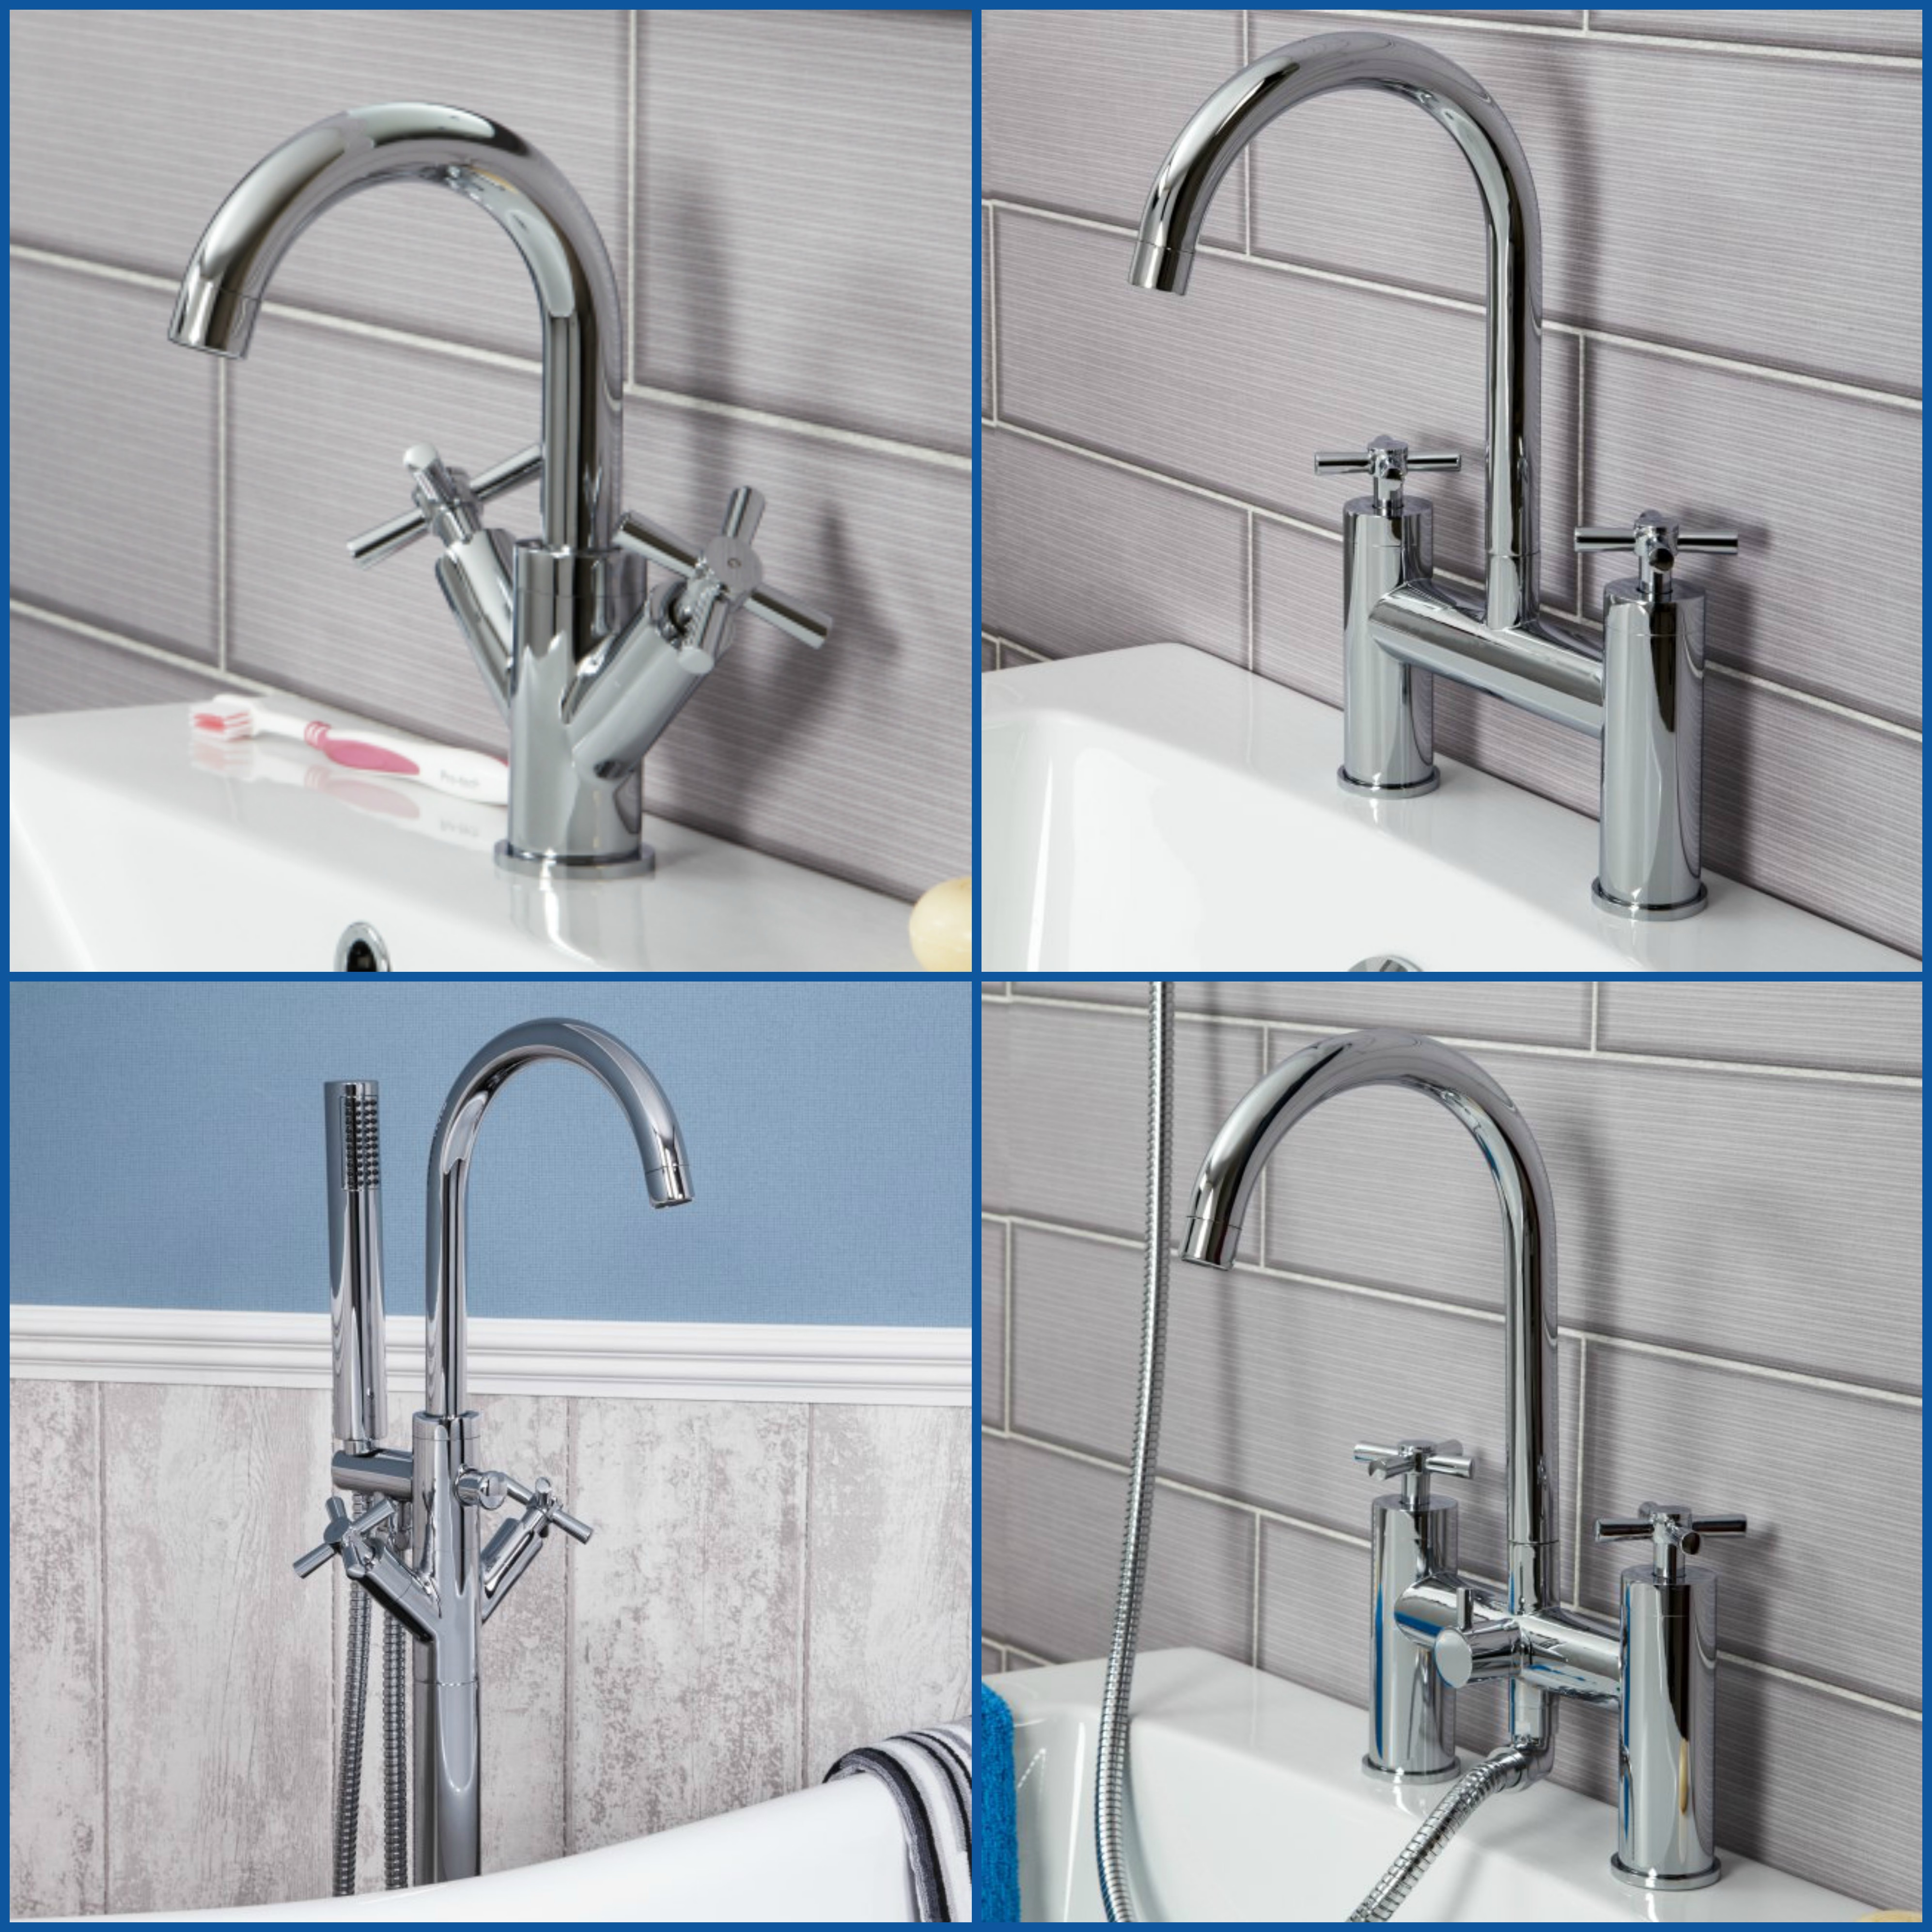 Modern Bathroom Tap Sets Mono Basin Mixer Bath Filler Shower Mixer ...